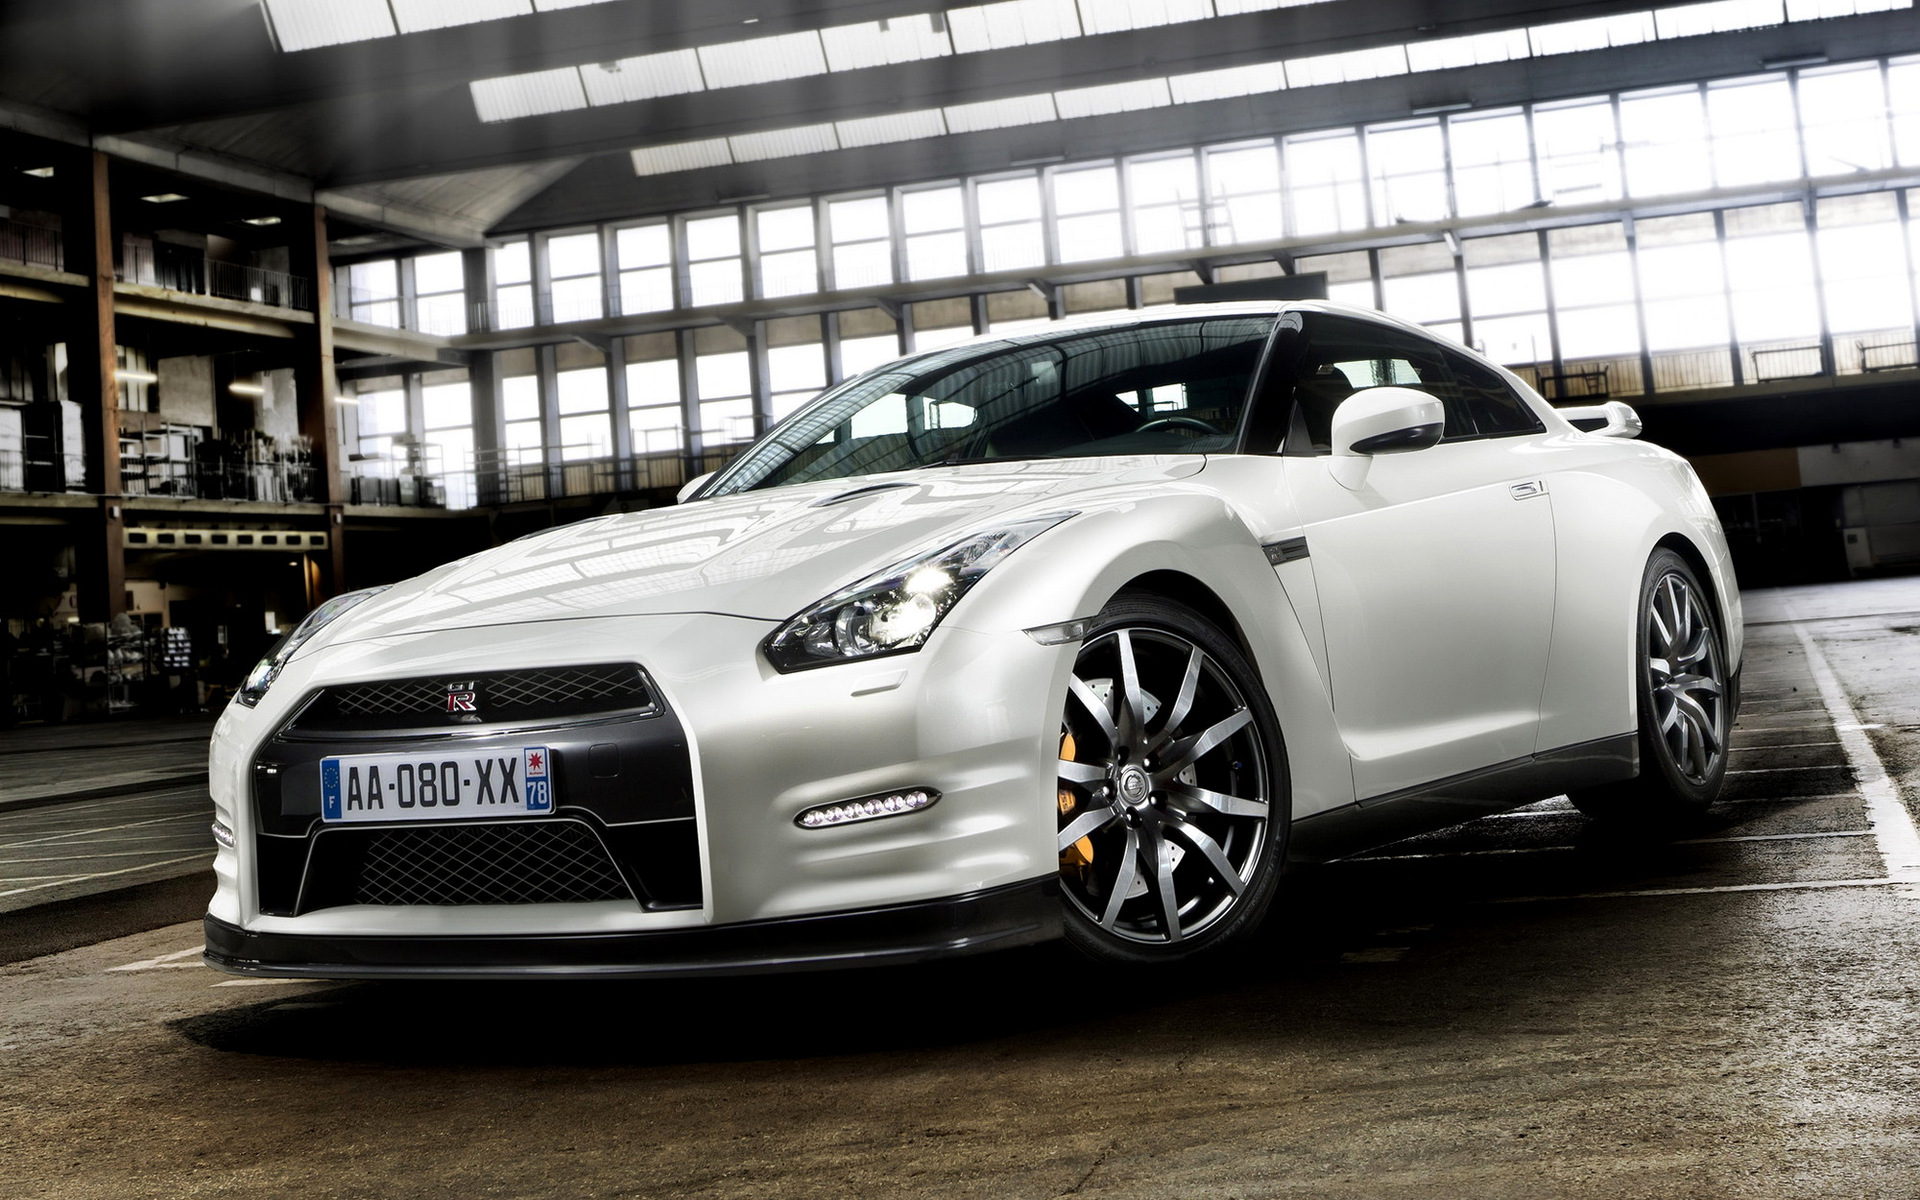 nissan gt r black edition 2010 wallpapers and hd images. Black Bedroom Furniture Sets. Home Design Ideas